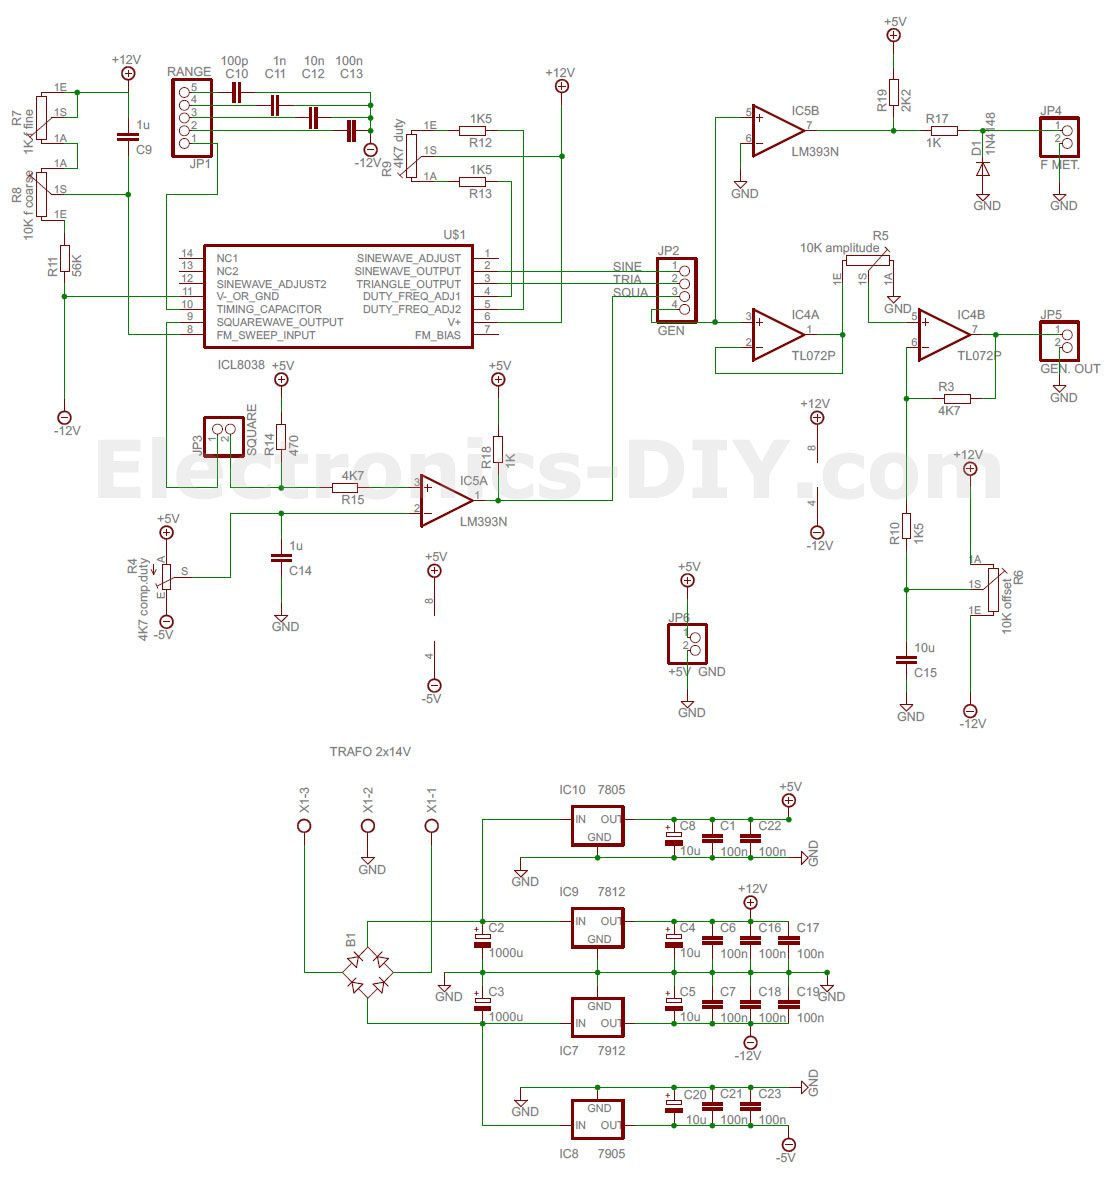 ICL8038 Function Generator | ELECTRONICA | Pinterest | Function ...